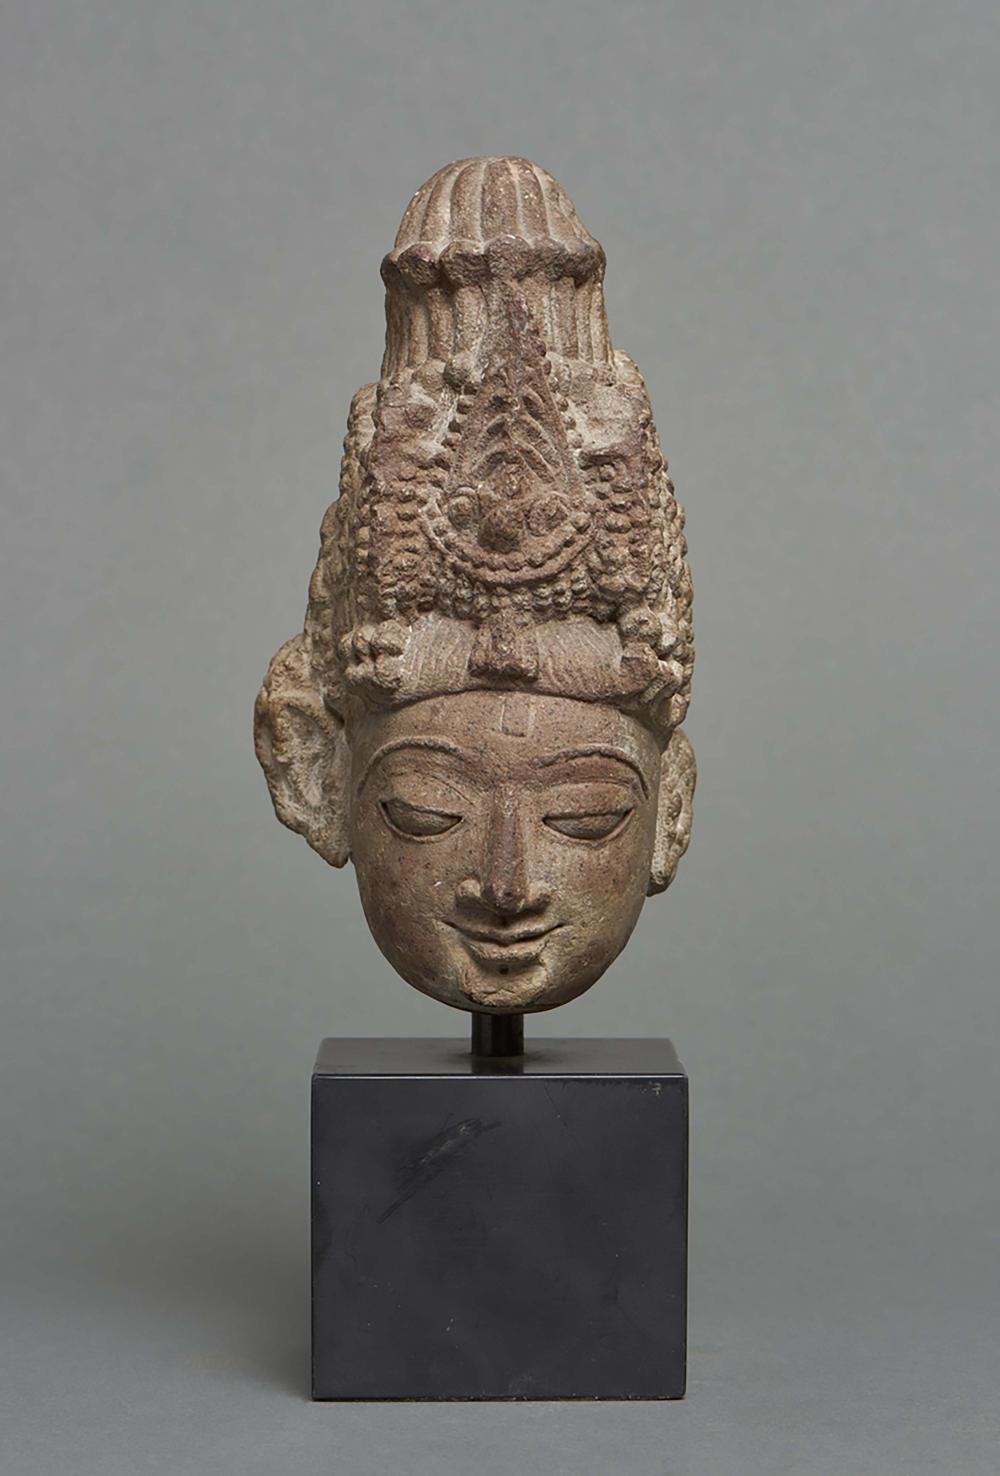 Stone head on a stand depicting the Indian god Shiva. On a plinth. India, 1